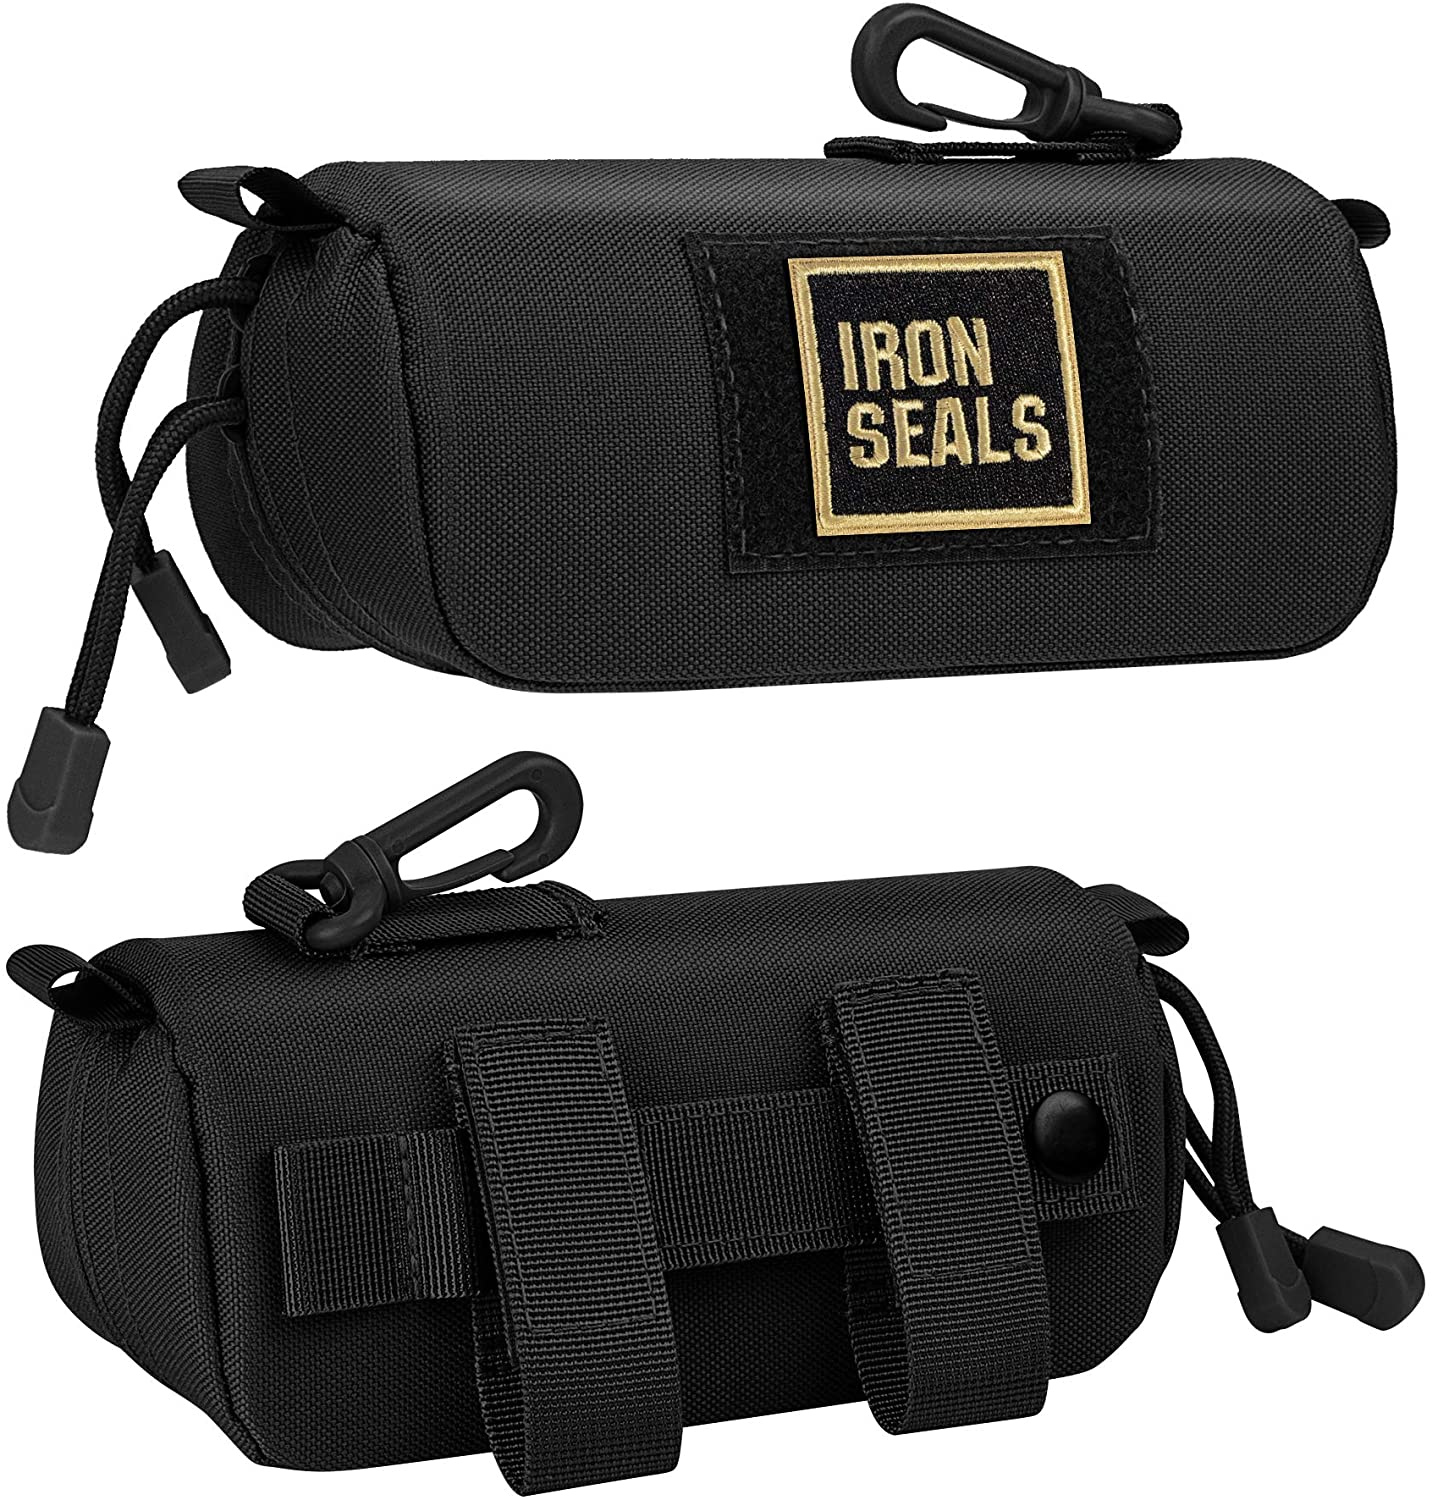 IronSeals Extra Large Tactical Molle Sunglasses Case Anti-Shock Semi-hard Clamshell Glasses Case, X-Large